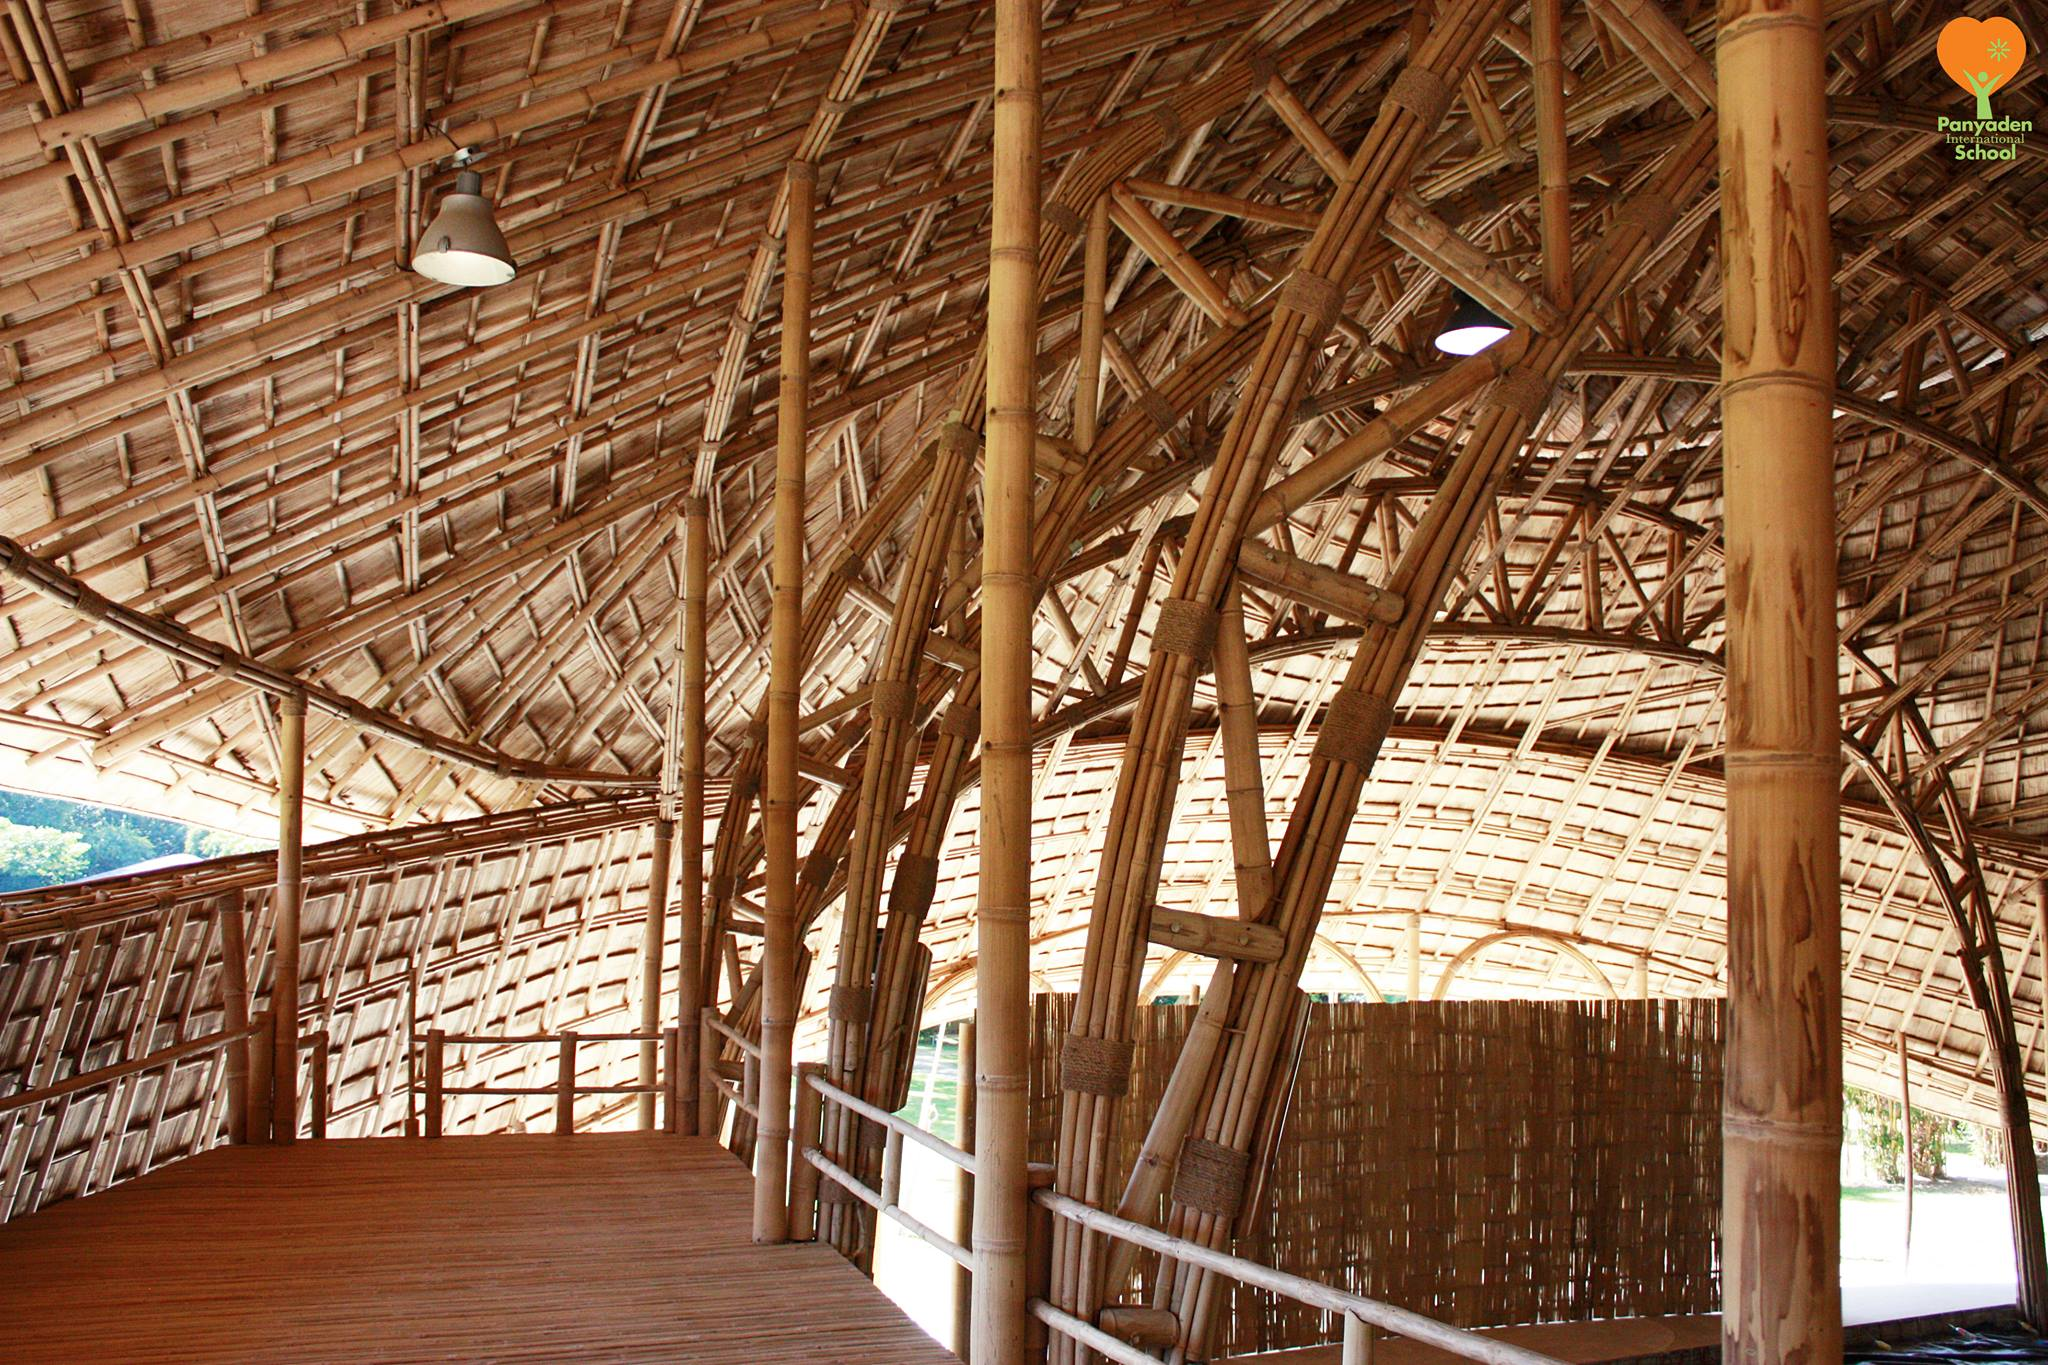 Arches and curved bamboo roof design, Photo by Panyaden International School